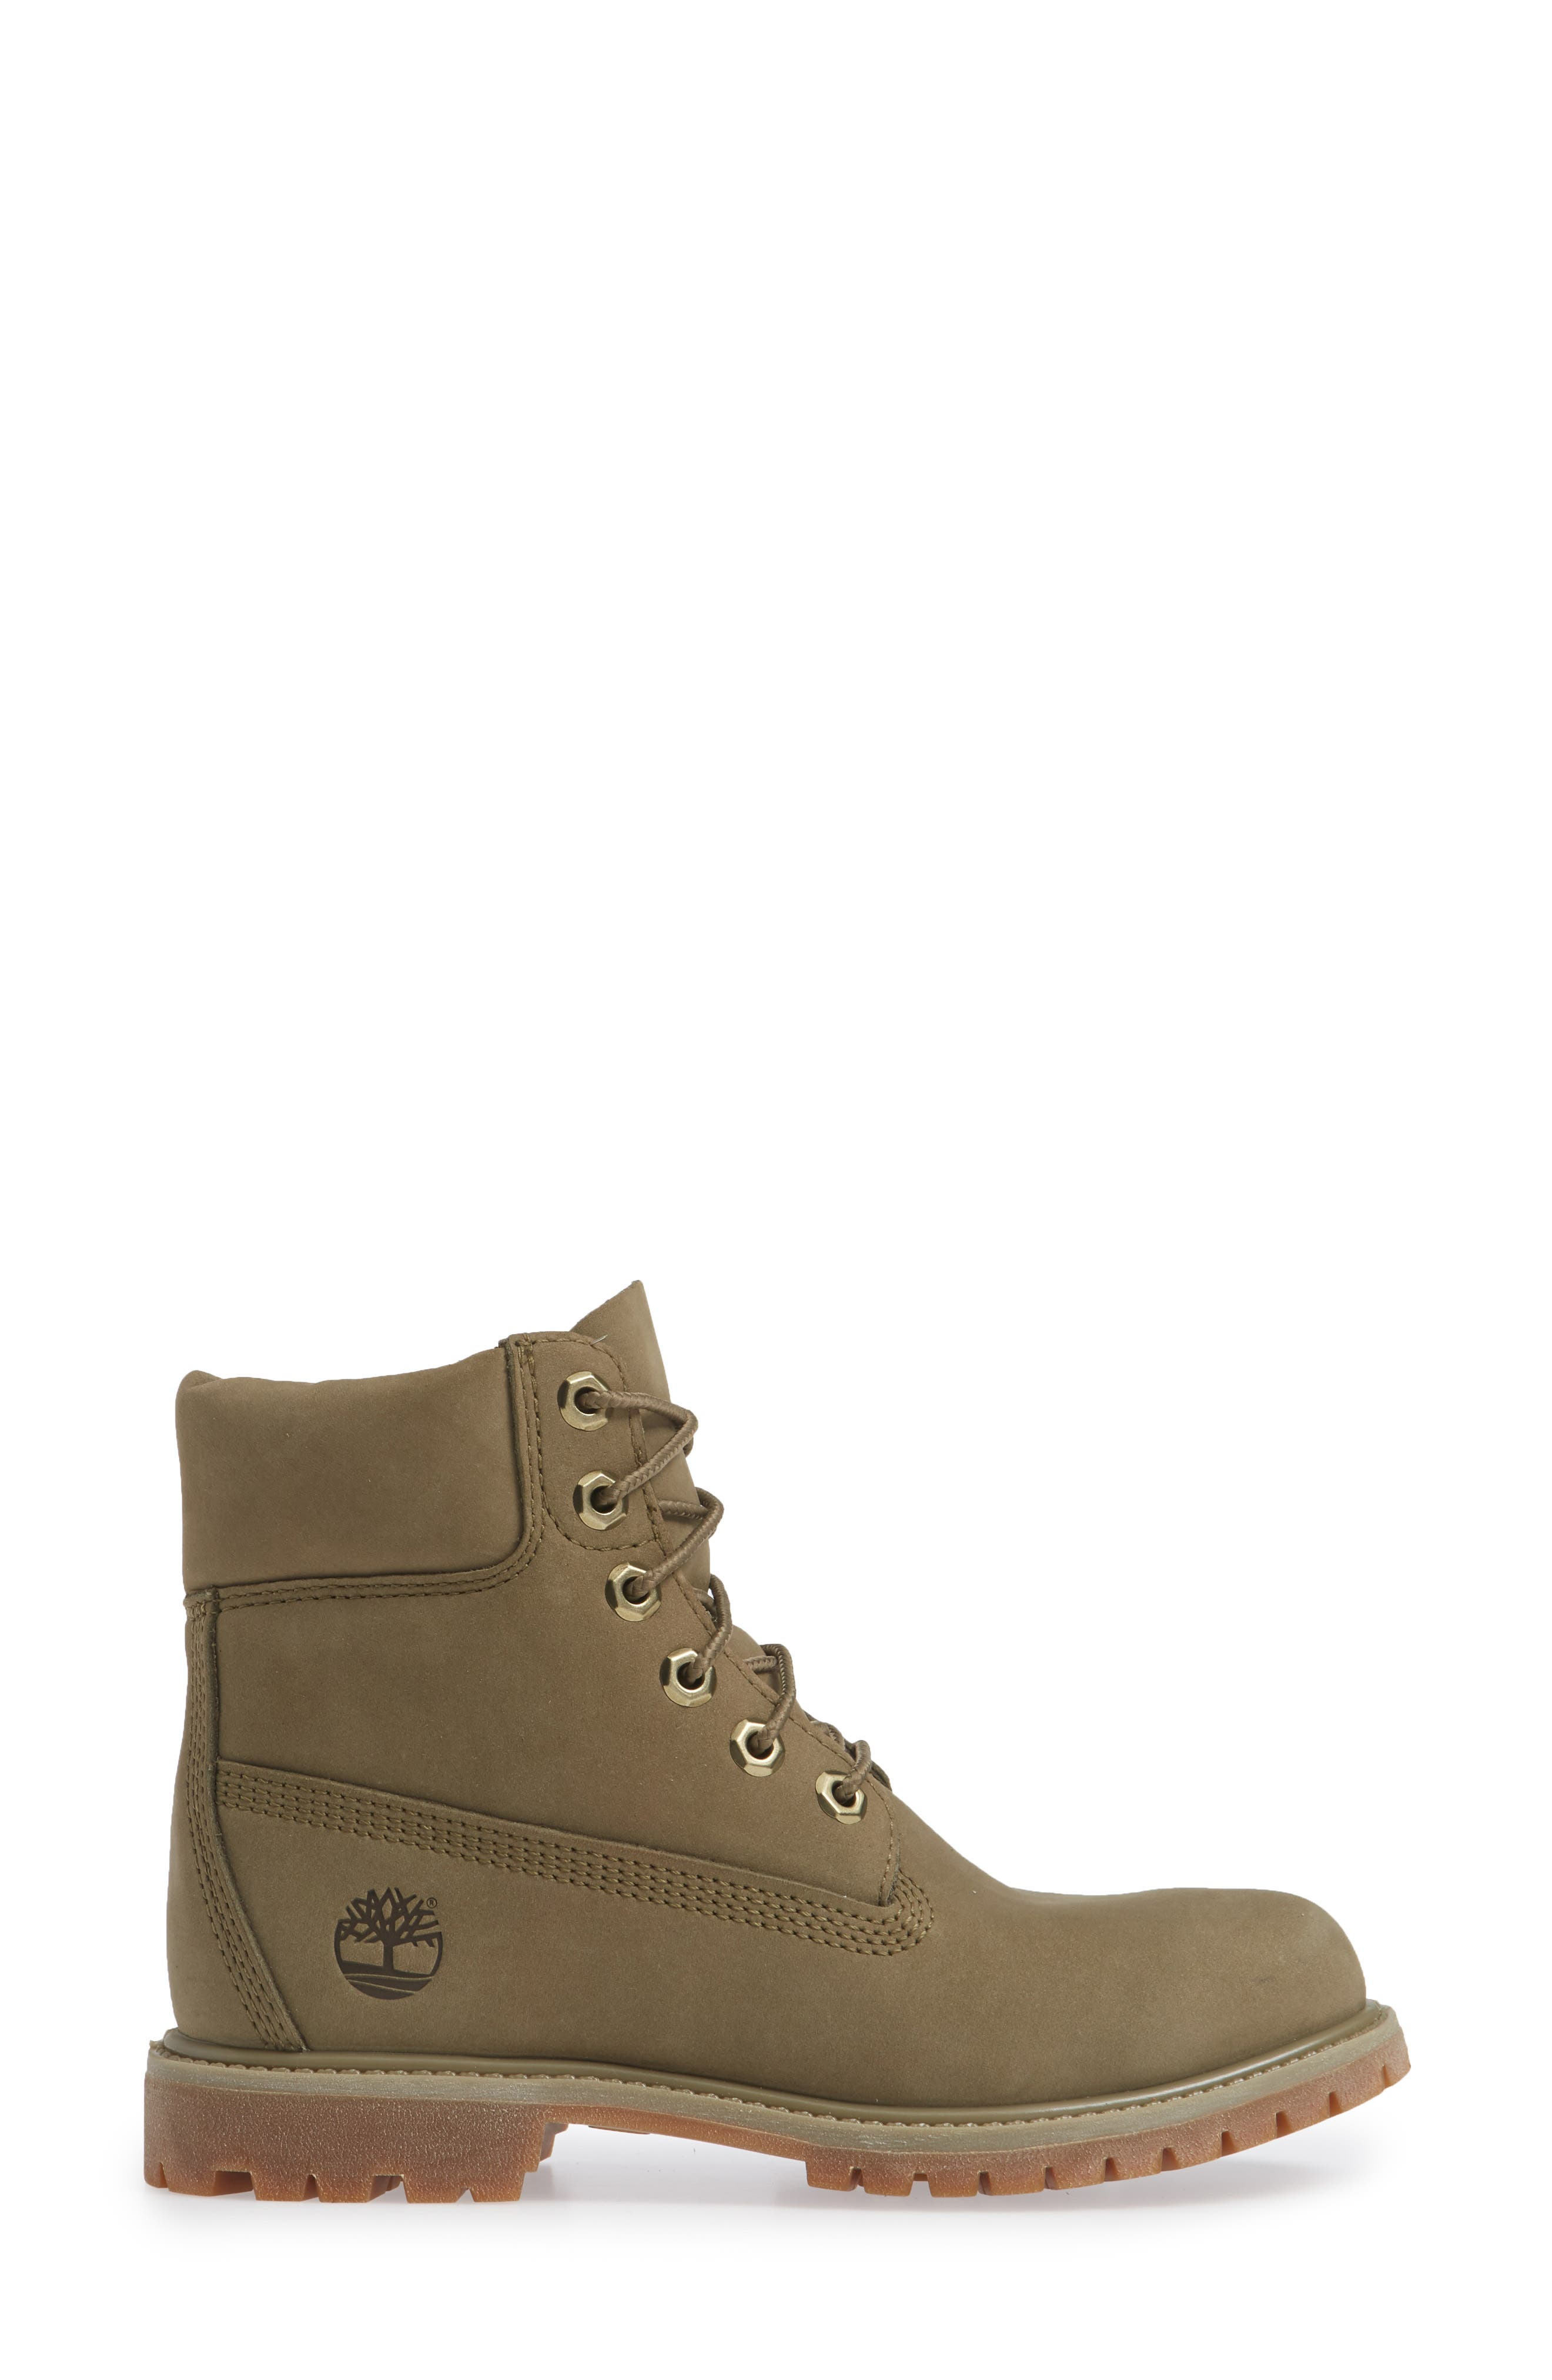 '6 Inch Premium' Waterproof Boot,                             Alternate thumbnail 3, color,                             COVERT GREEN LEATHER